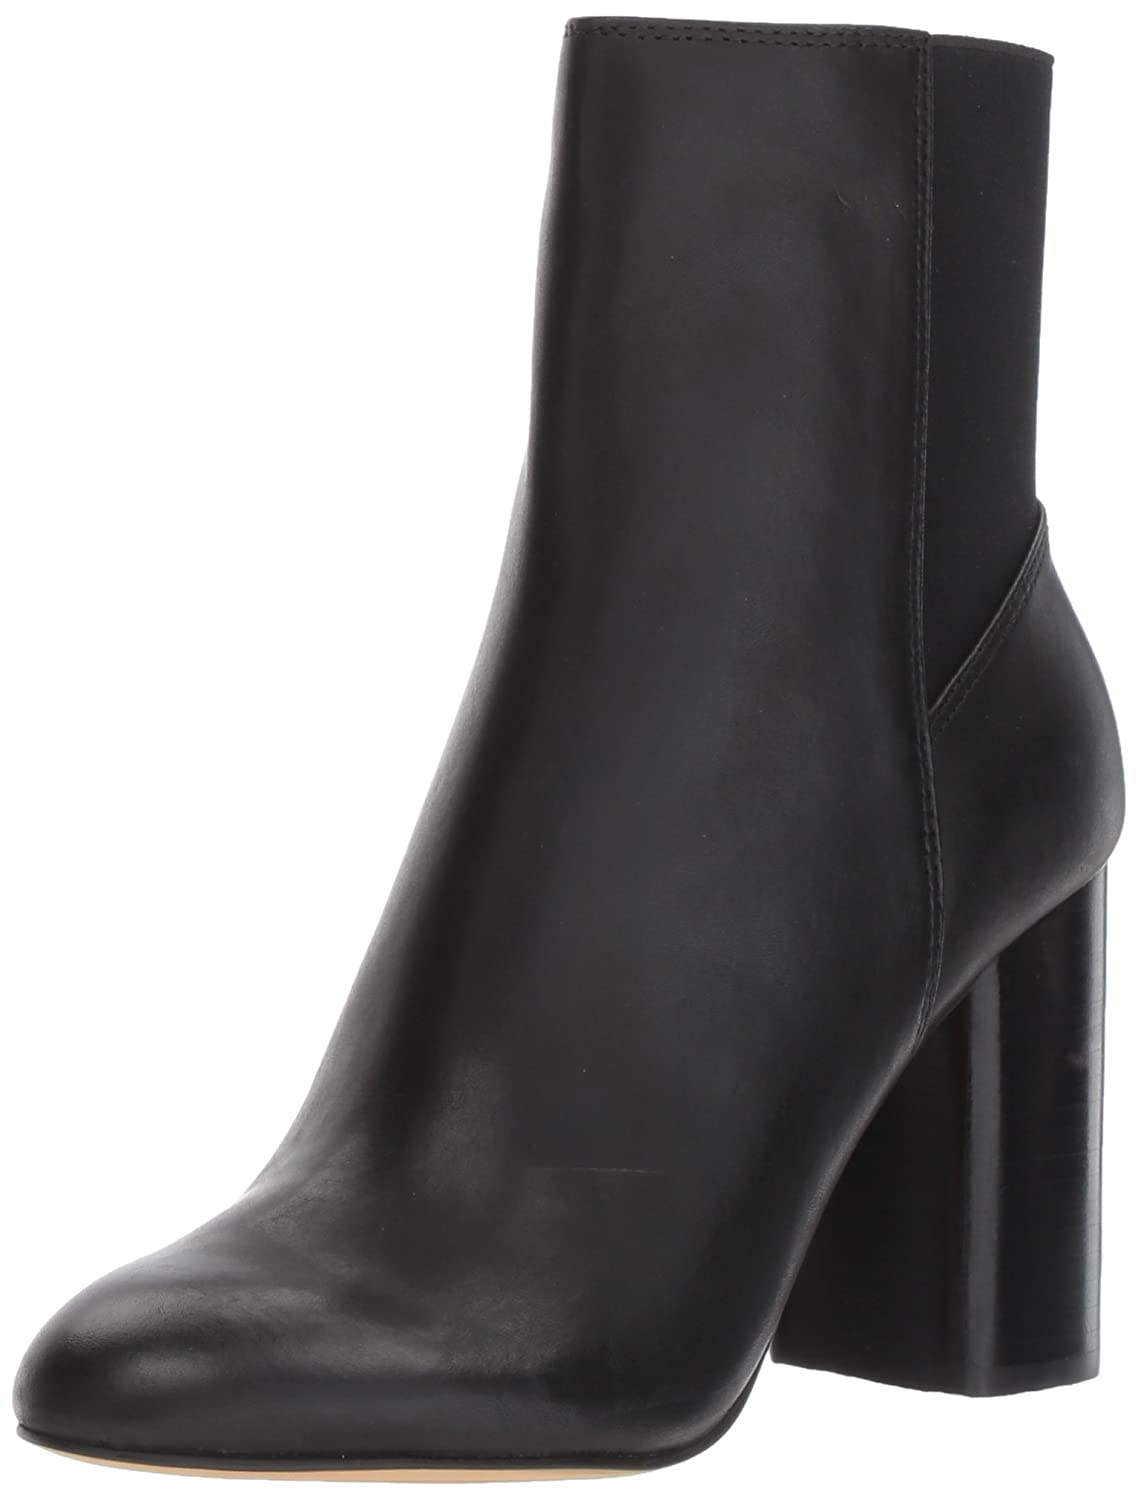 Dolce Vita Women's Ramona Fashion Boot B0744Q9RMG 8 B(M) US|Black Leather